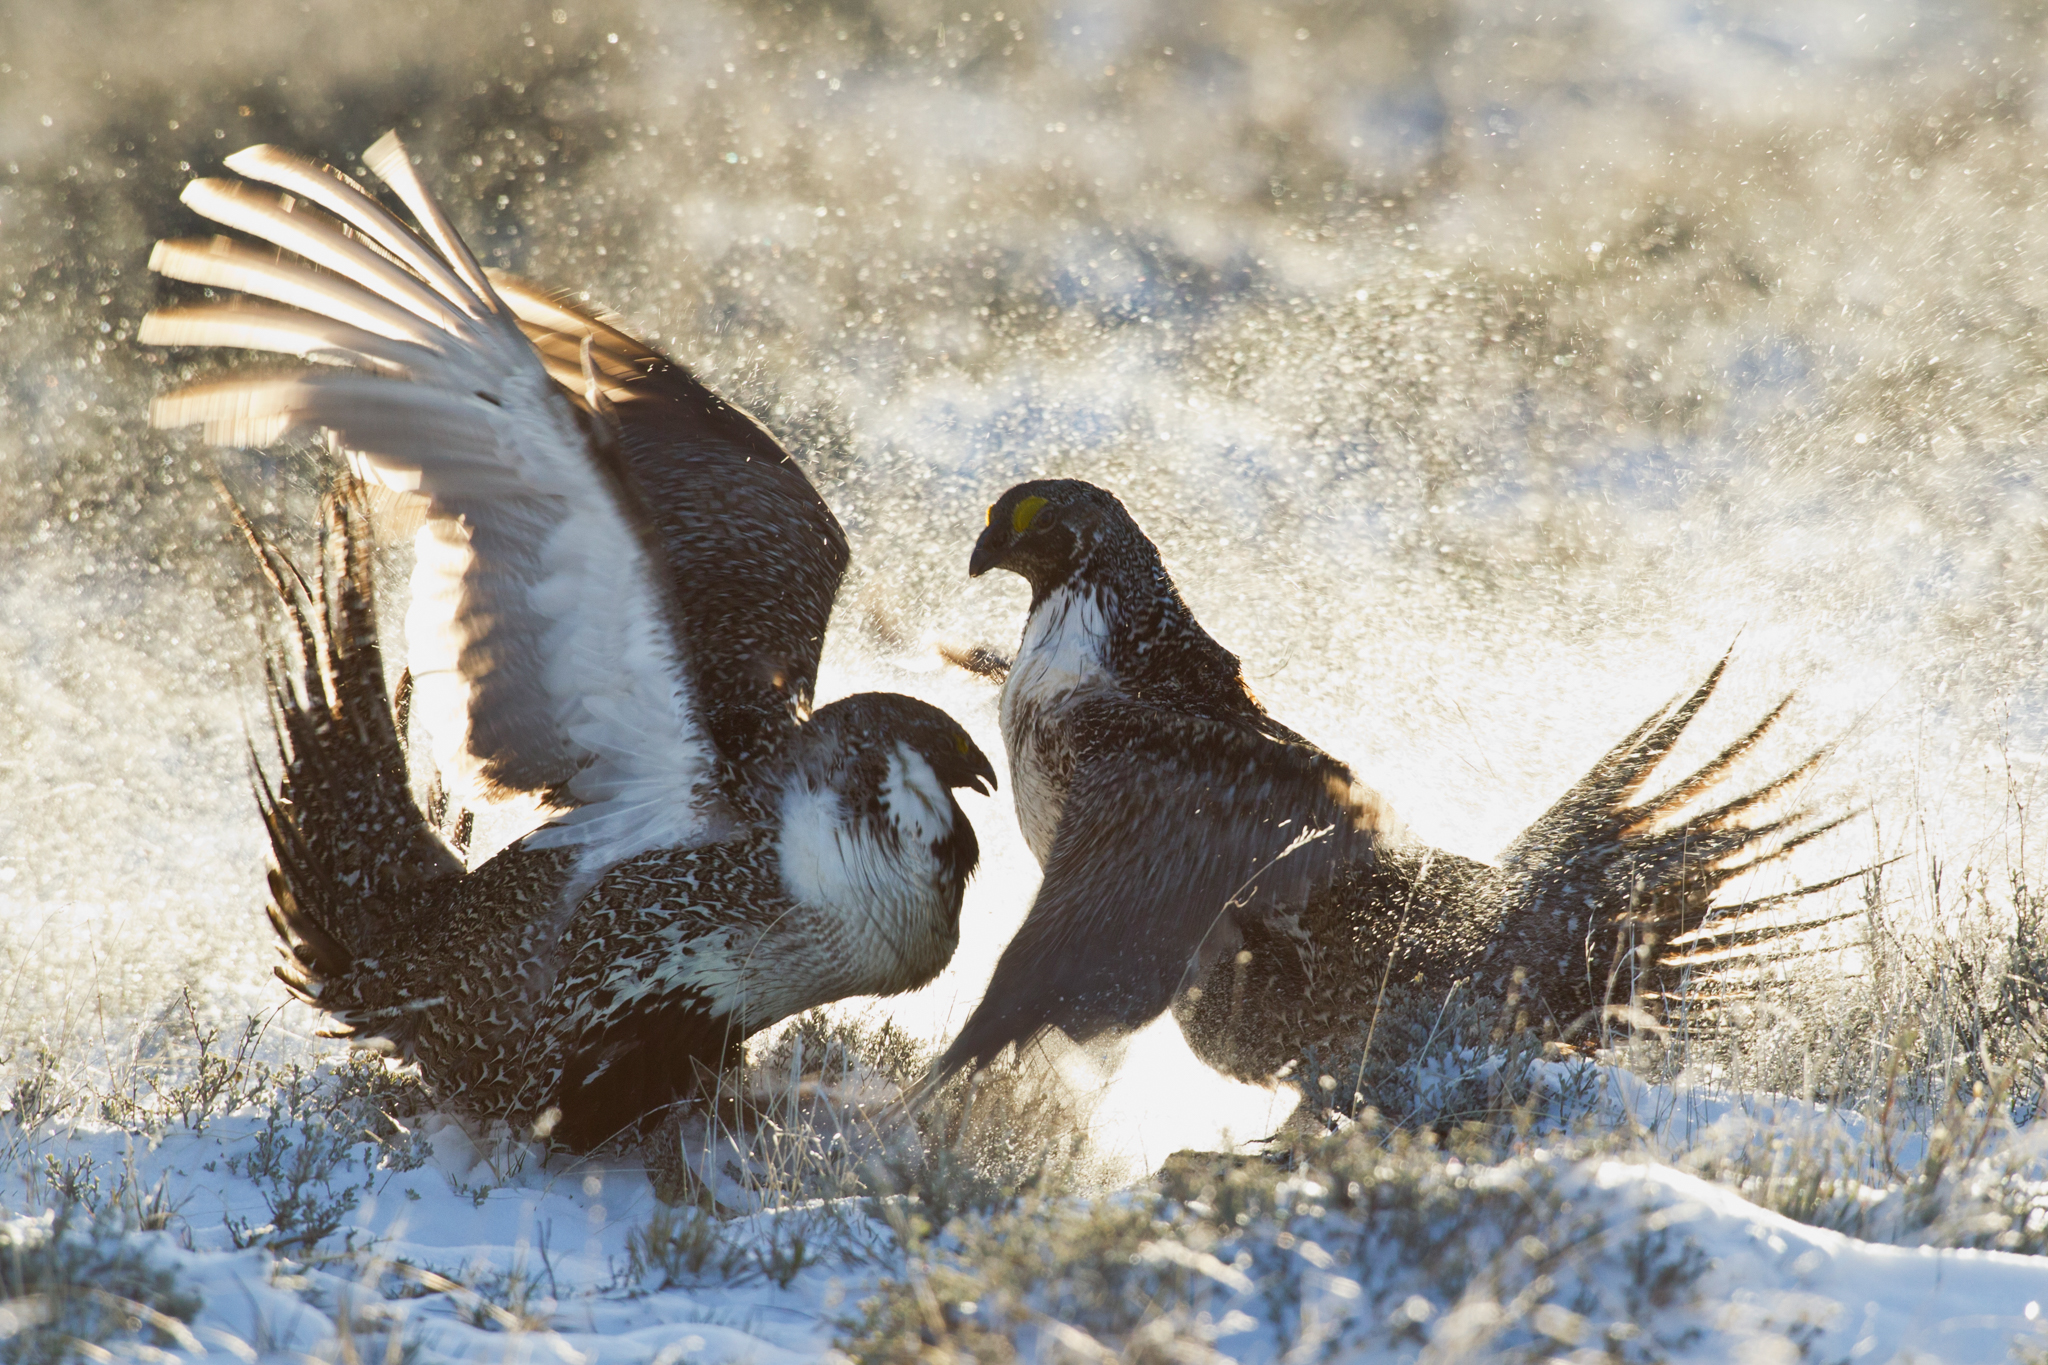 Sometimes battles in the lek become physical. Here, two males fight for supremacy amidst a dusting of snow on an early spring morning. Photograph by Danita Delimont